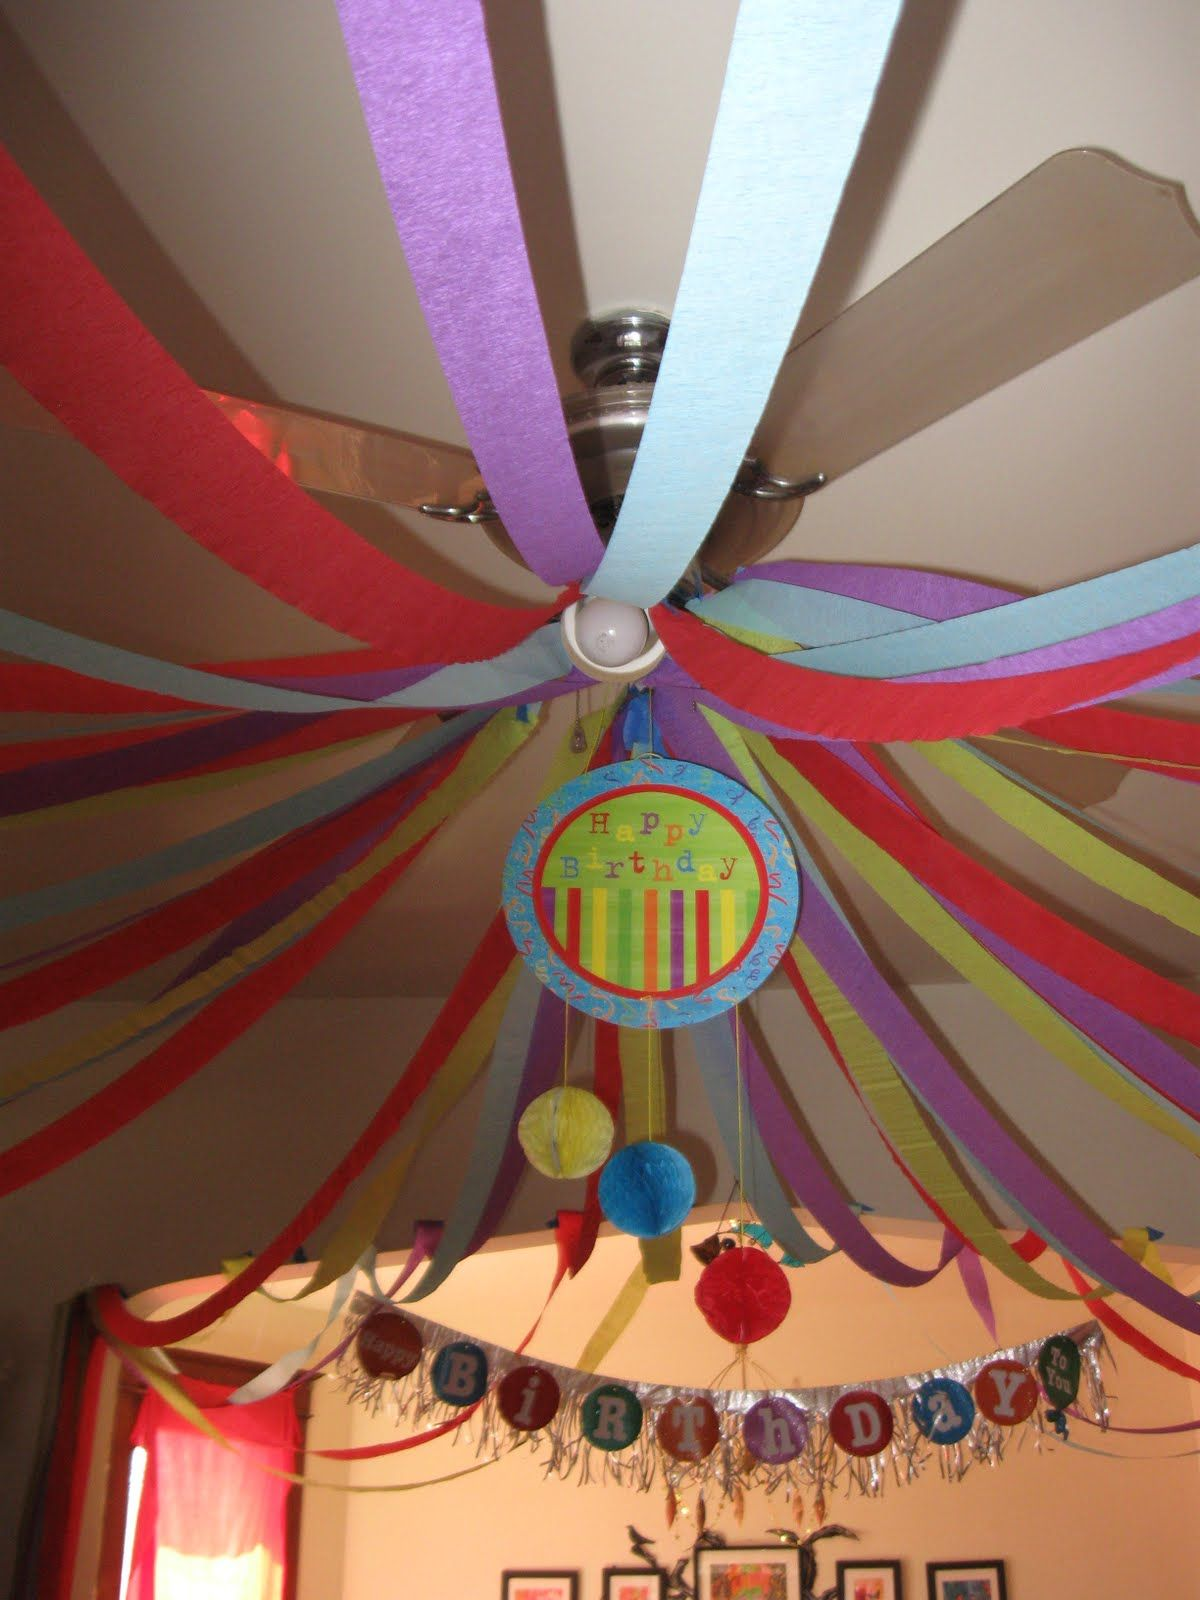 Crepe paper streamers decoration from light fixture ...